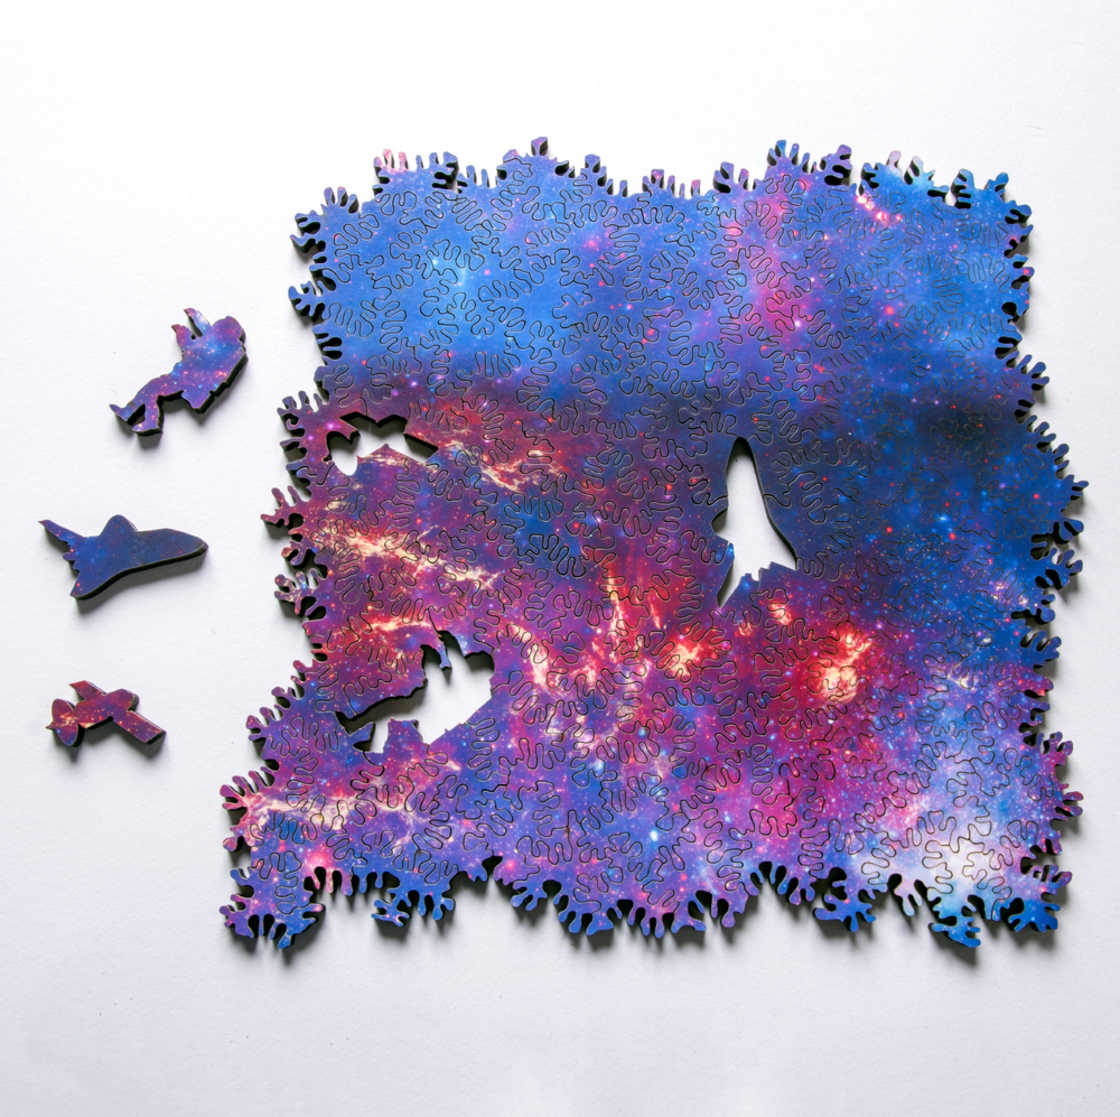 Infinite Galaxy Puzzle - An amazing spatial puzzle with no beginning or end